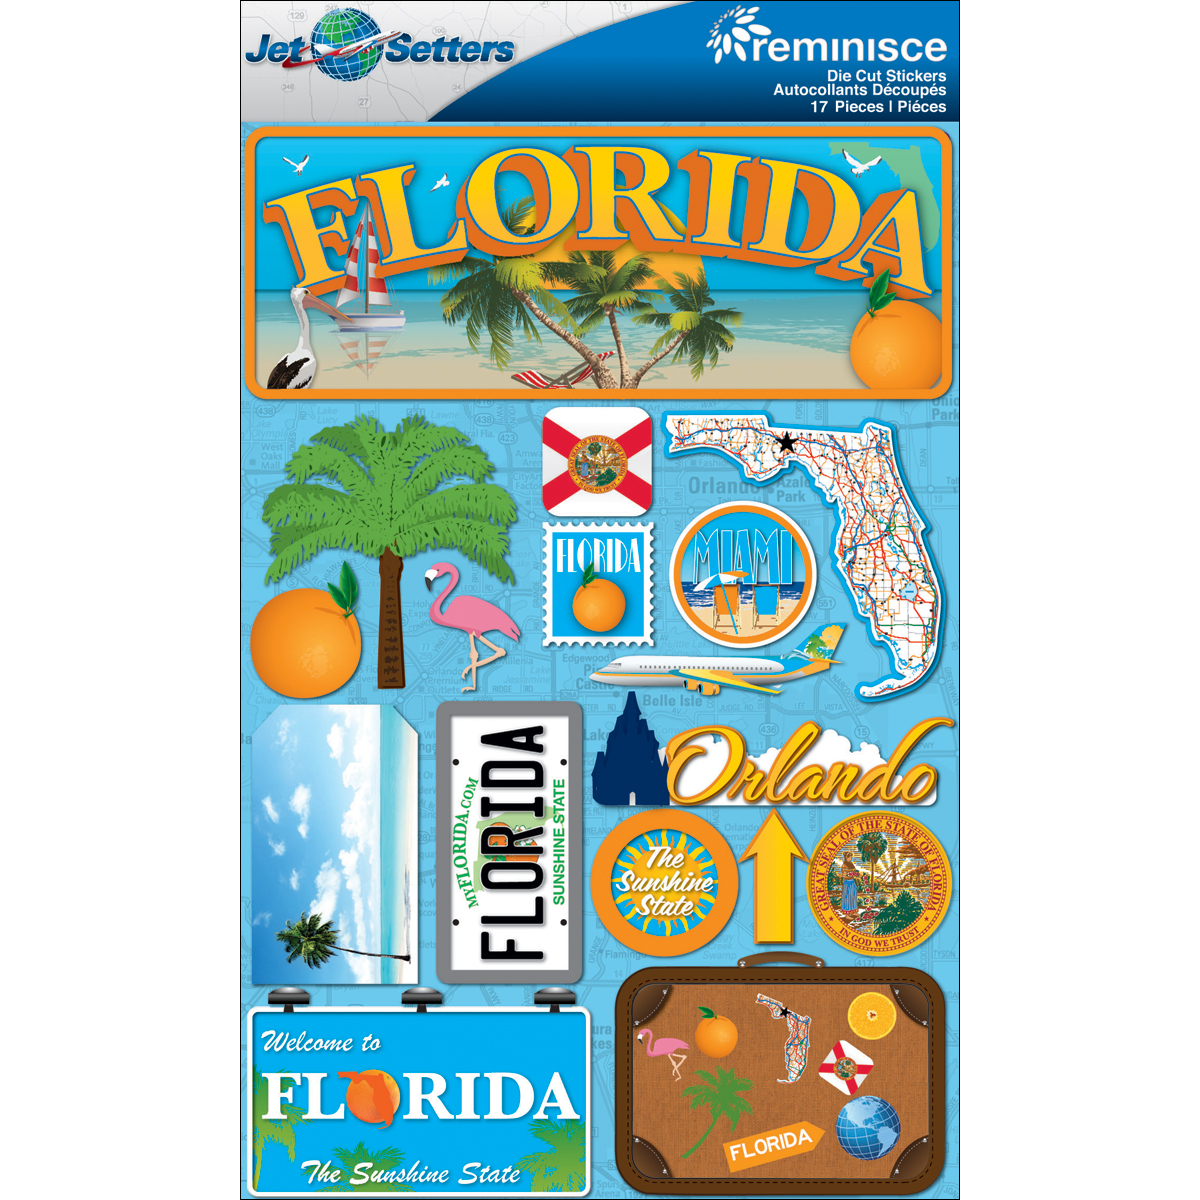 Florida - Reminisce Jet Setters State Dimensional Stickers